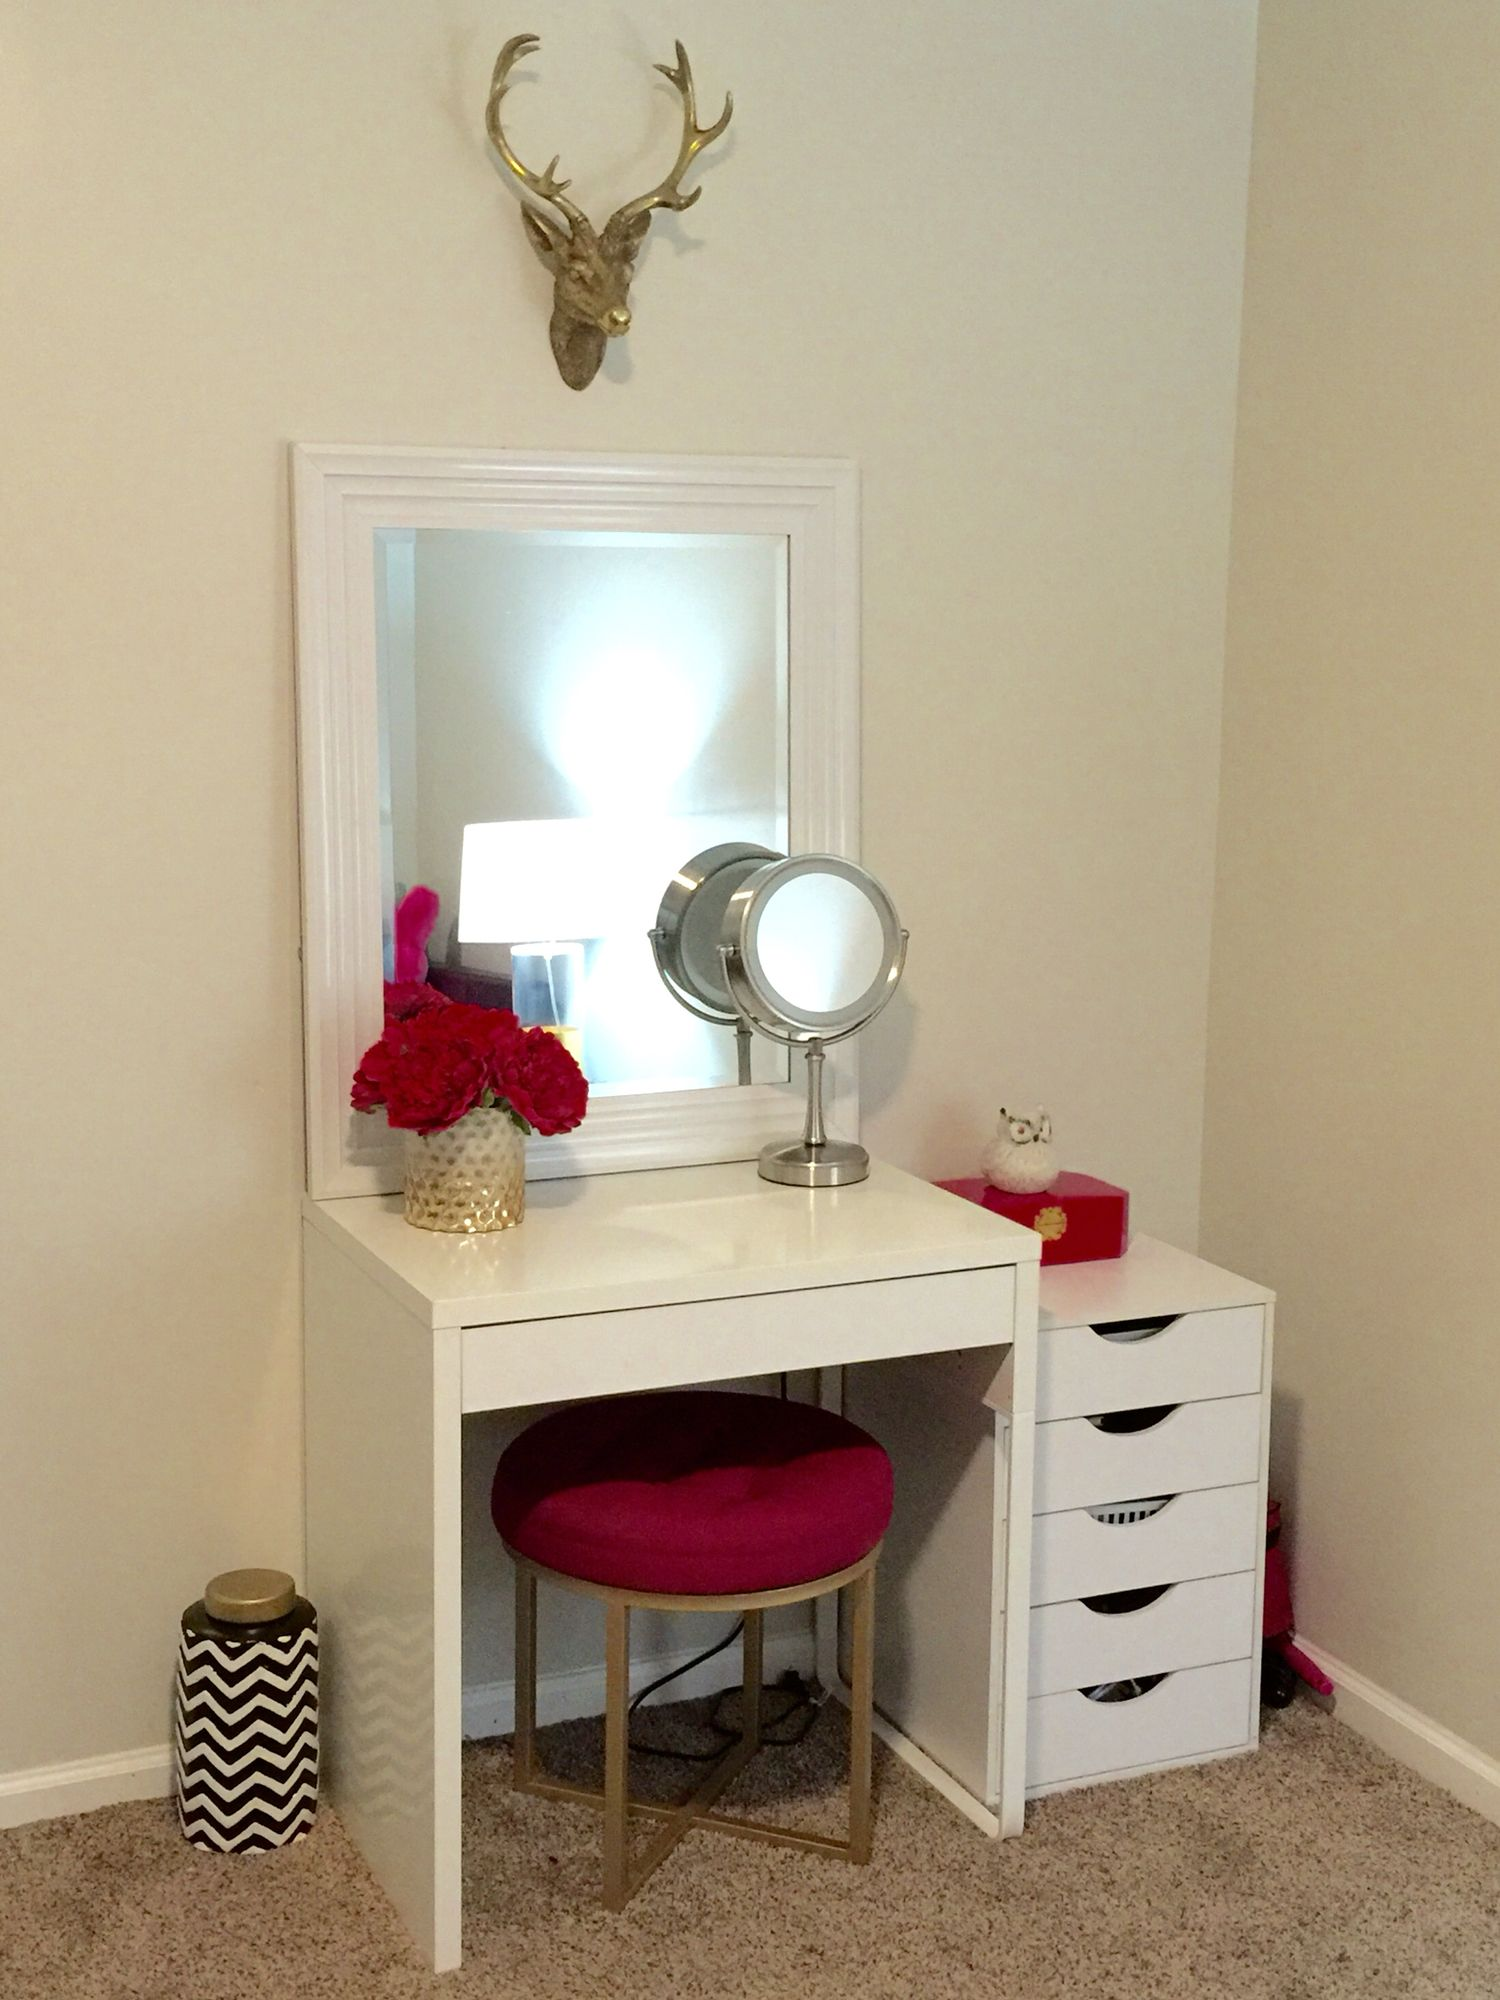 Makeup Vanity Small Spaces 23 43 Diy Makeup Room Ideas Organizer Storage And